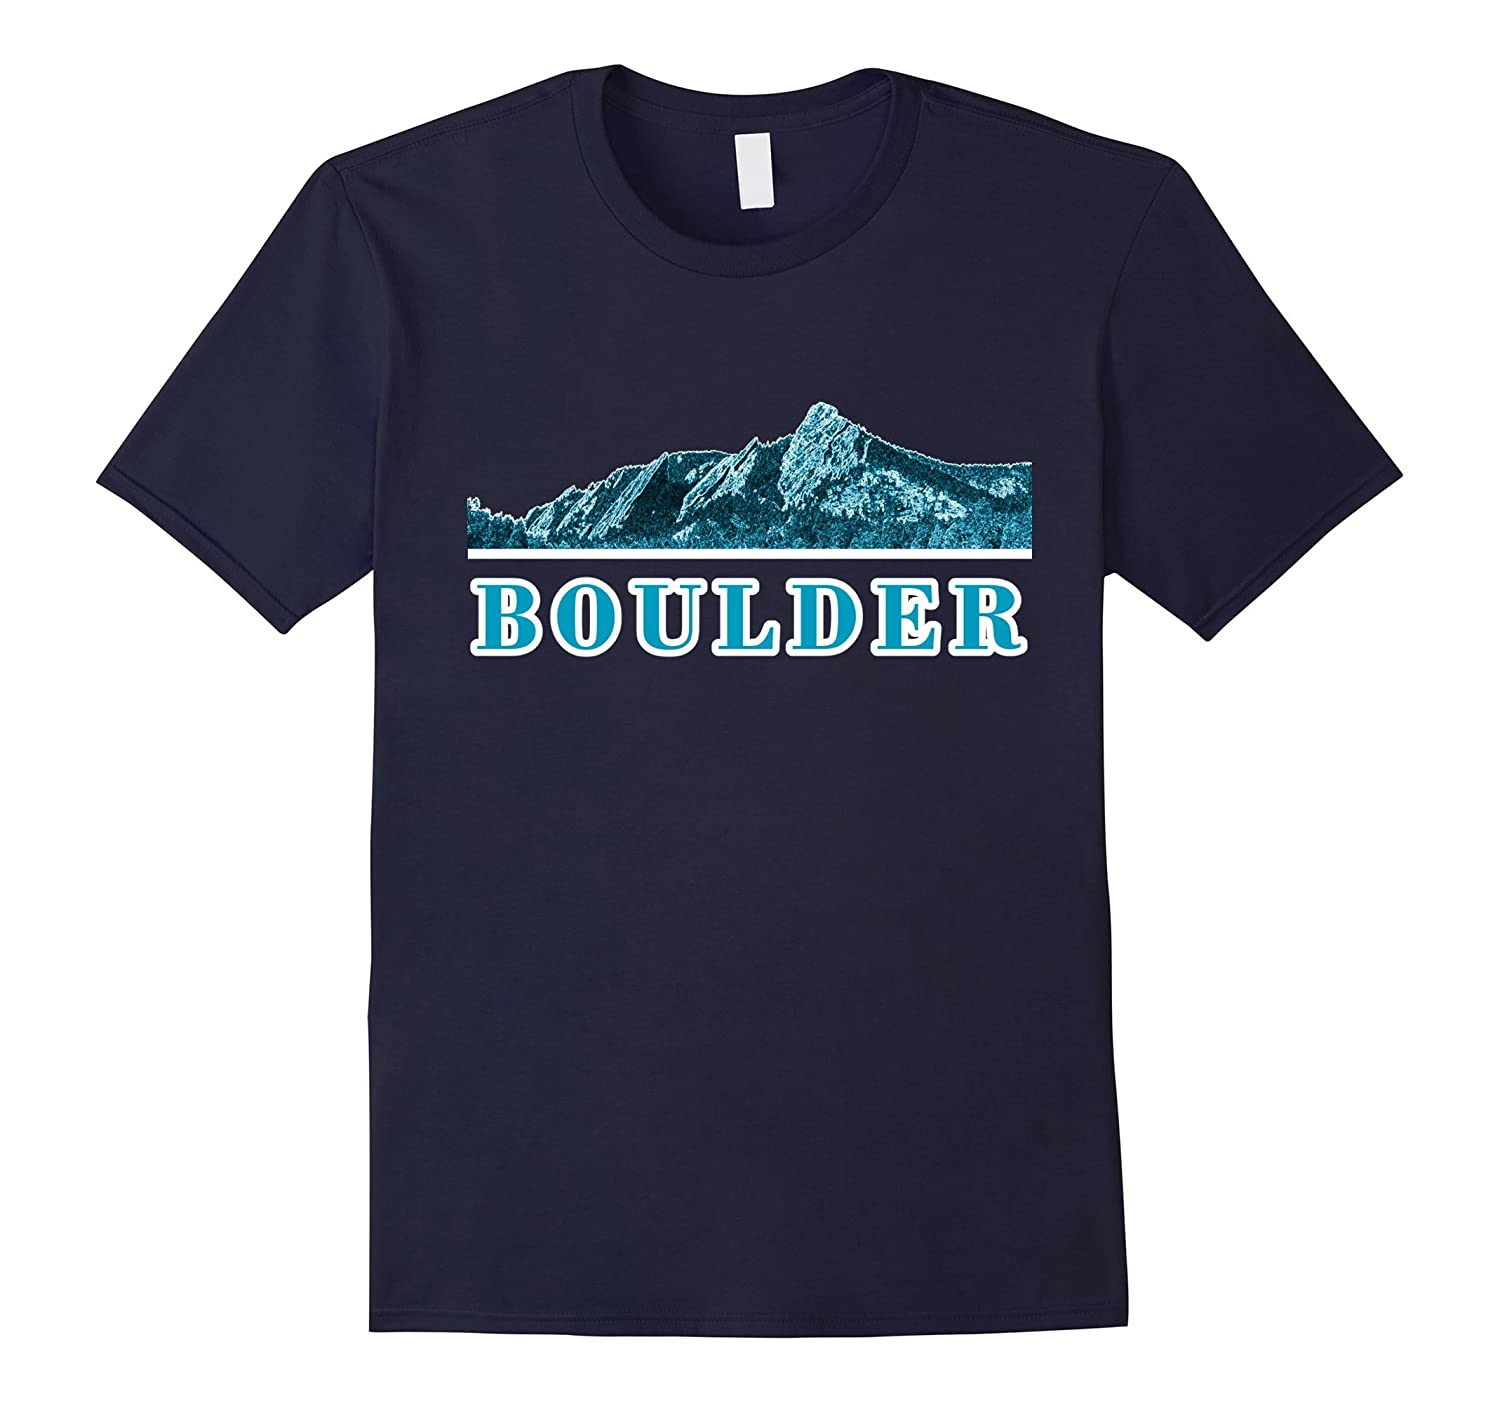 Colorado Shirt with The Boulder Flat Irons in Blue Style